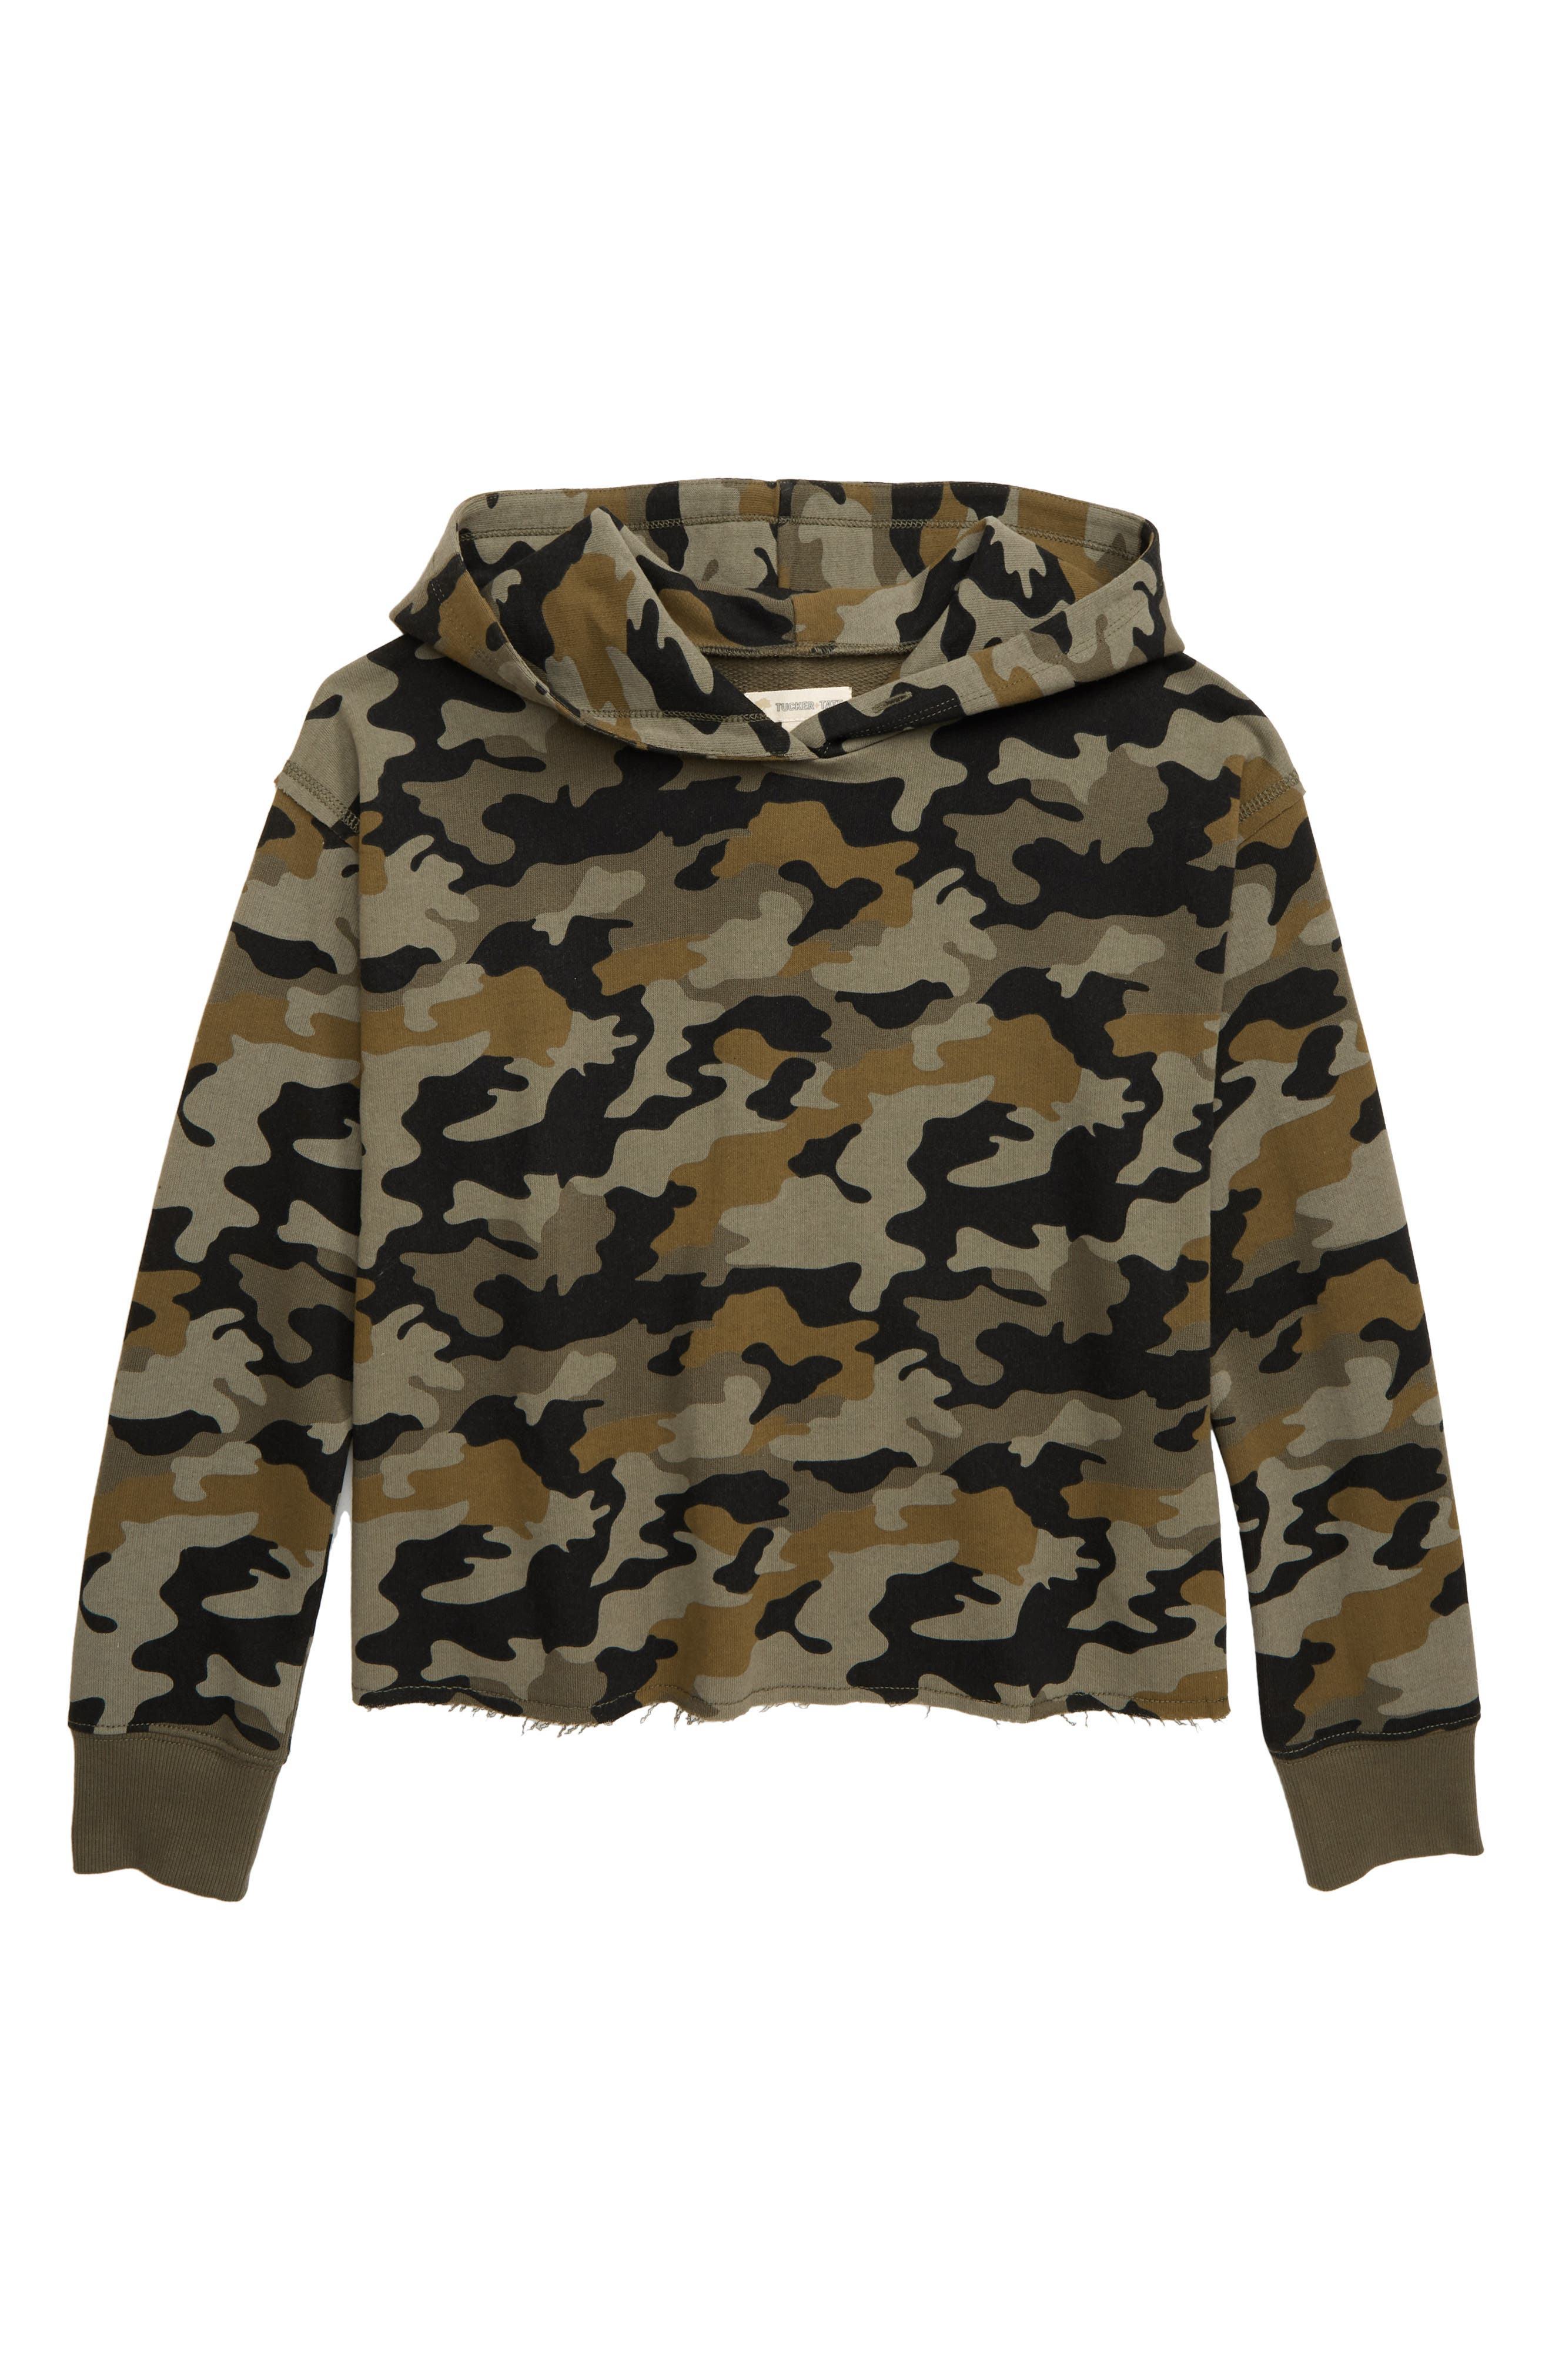 Girls Tucker  Tate Camo Print Hoodie Pullover Size M (810)  Green